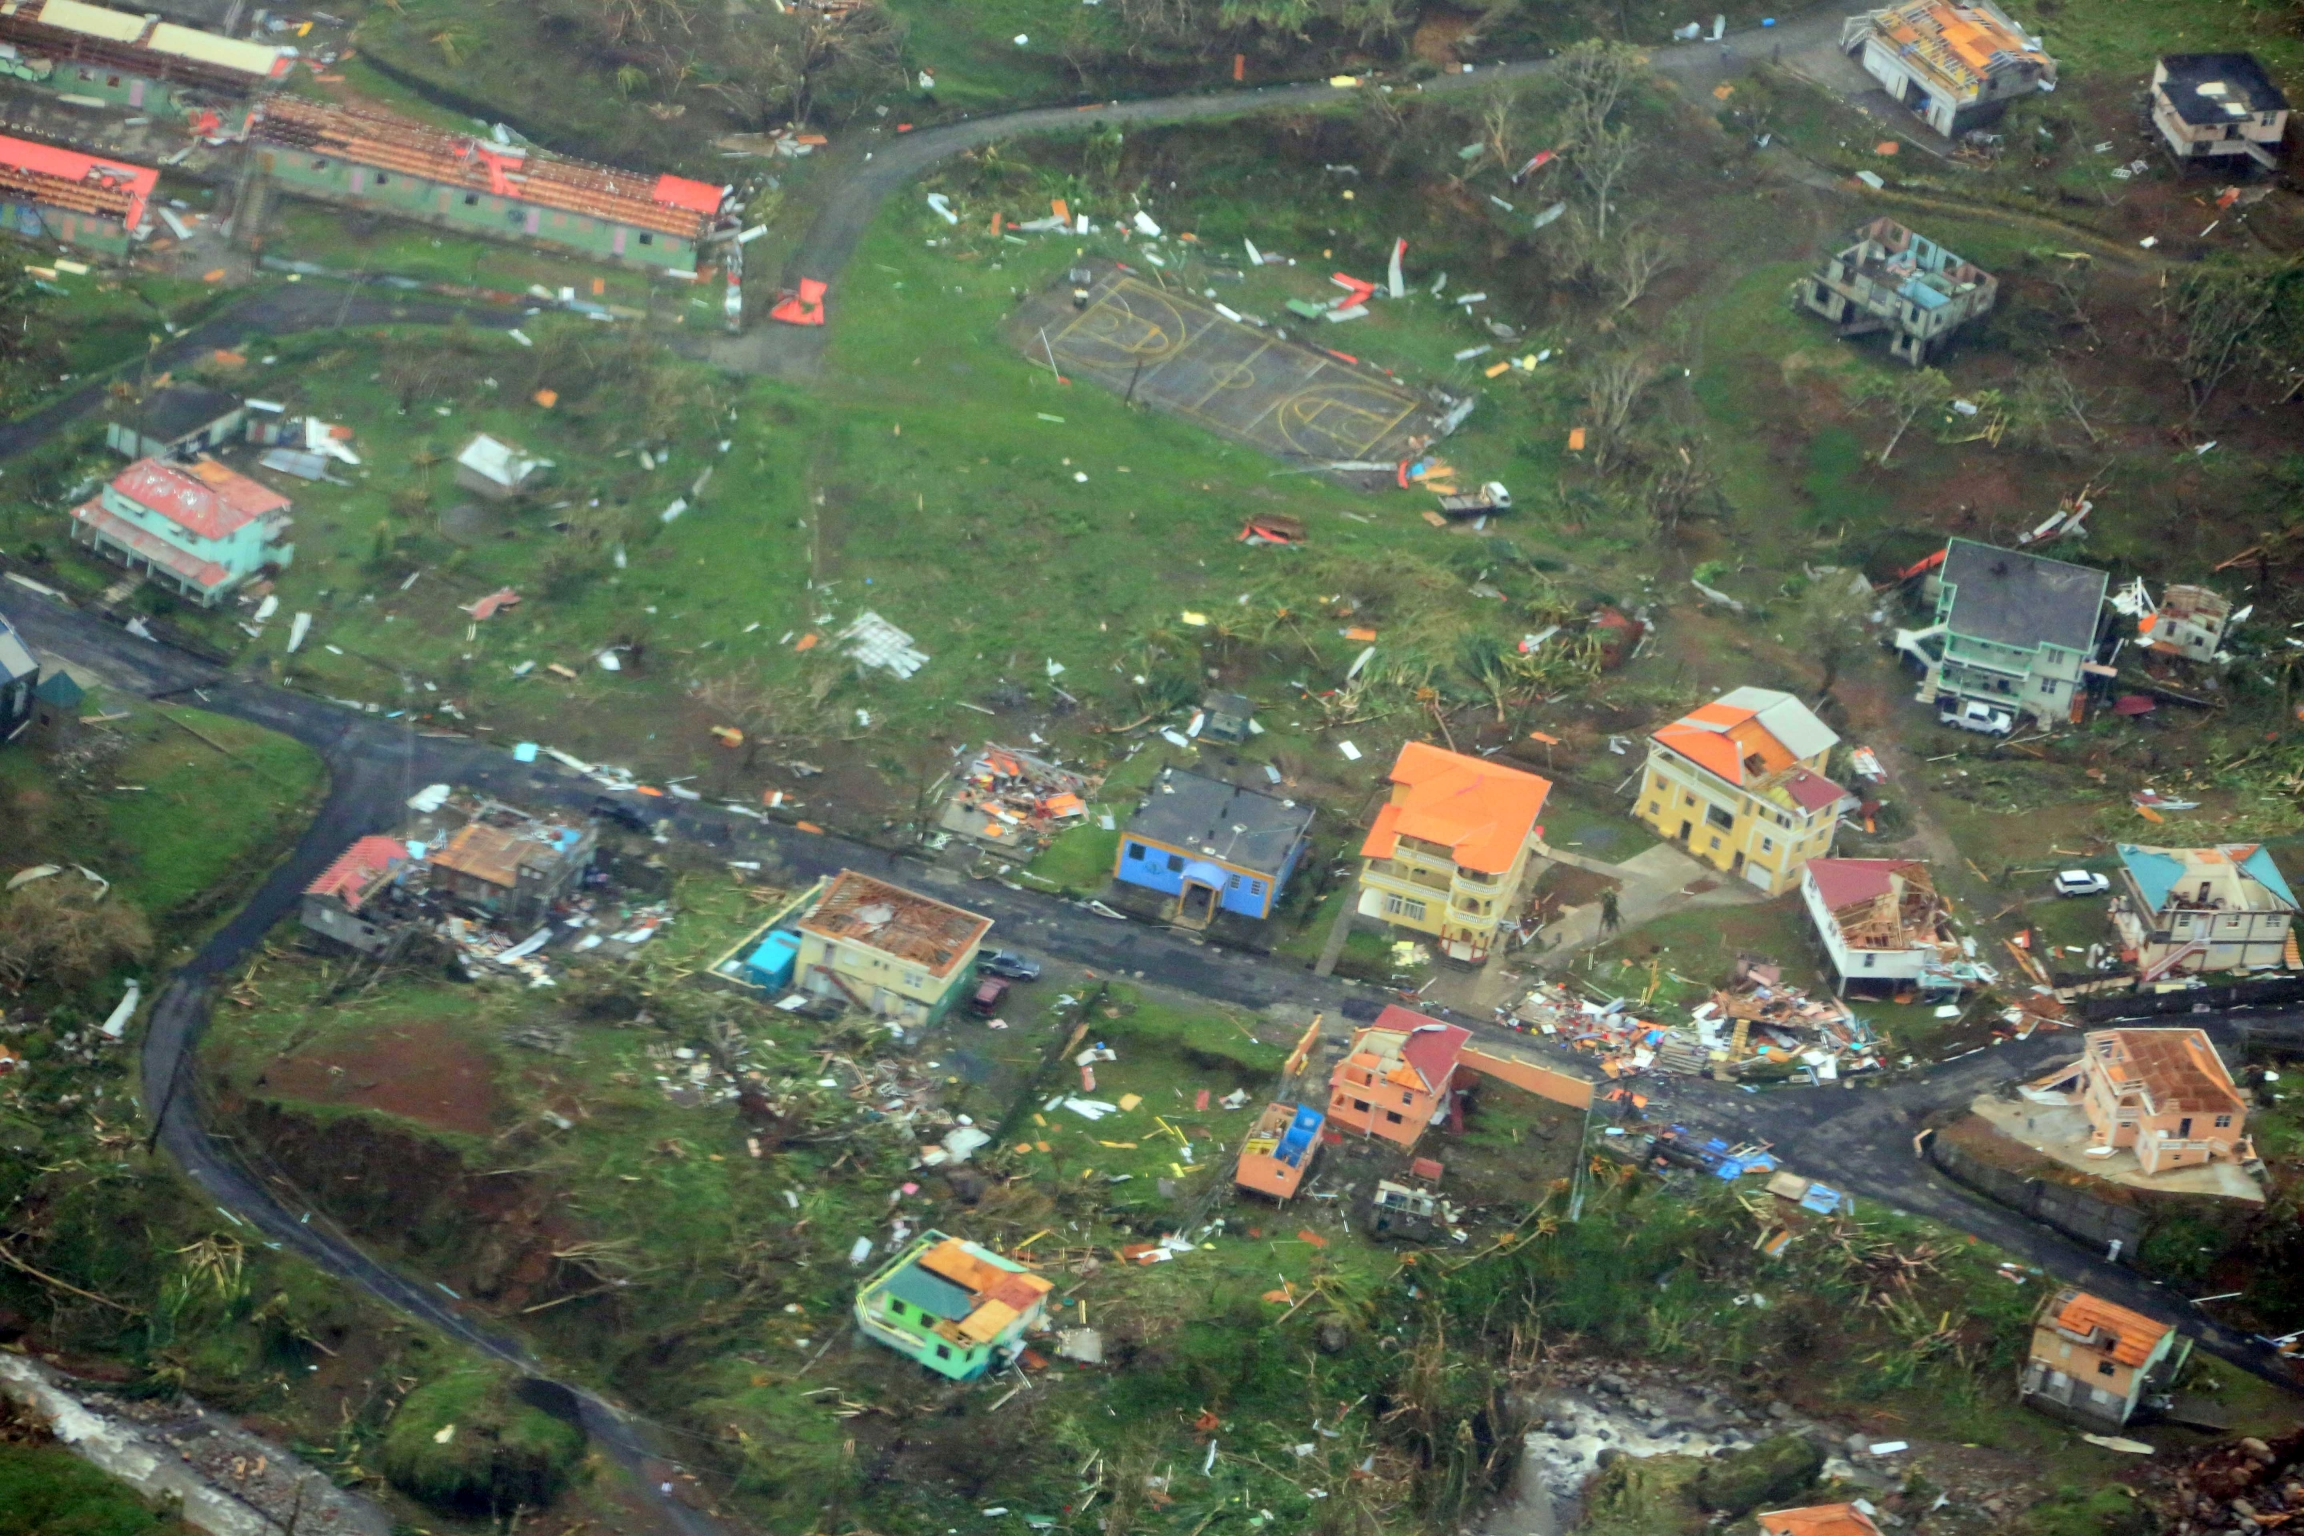 Damaged homes from Hurricane Maria are shown in this aerial photo over the island of Dominica, Sept. 19, 2017.